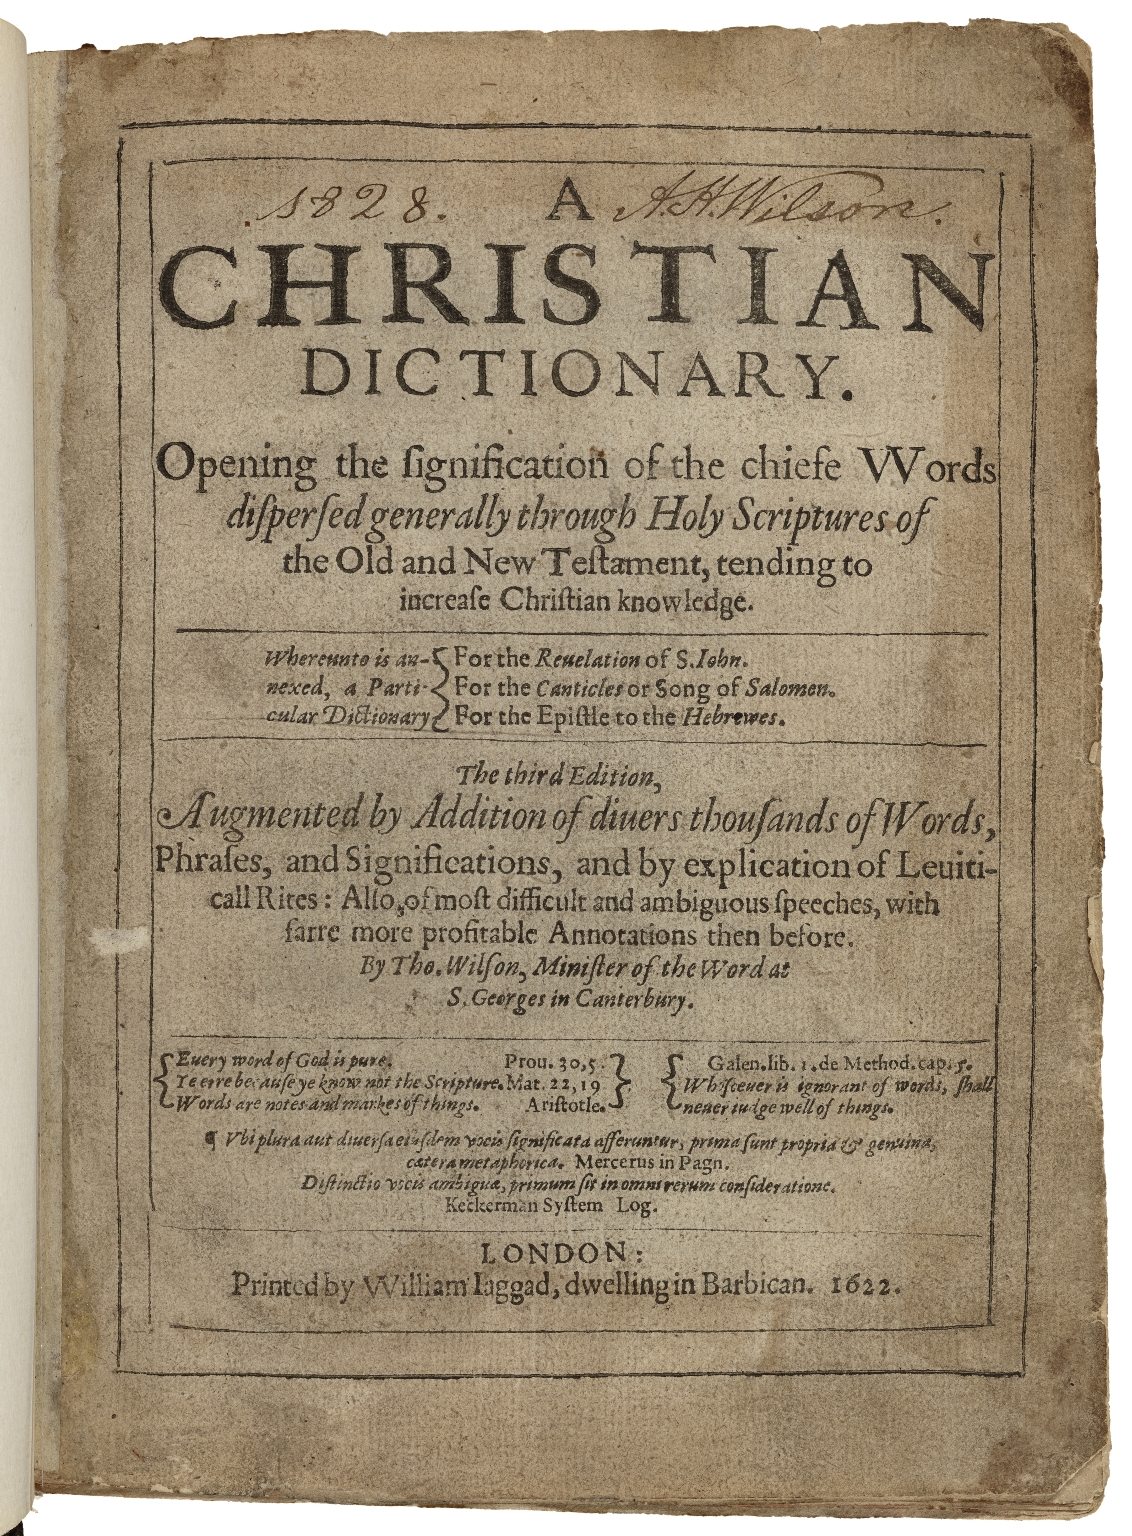 A Christian dictionary. : Opening the signification of the chiefe vvords dispersed generally through Holy Scriptures of the Old and New Testament, tending to increase Christian knowledge. Whereunto is annexed, a particular dictionary for the Reuelation of S. Iohn. For the Canticles or Song of Salomon. For the Epistle to the Hebrewes. The third edition, augmented by addition of diuers thousands of words, phrases, and significations, and by explication of Leuiticall rites: also, of most difficult and ambiguous speeches, with farre more profitable annotations then before. By Tho. Wilson, minister of the Word at S. Georges in Canterbury.